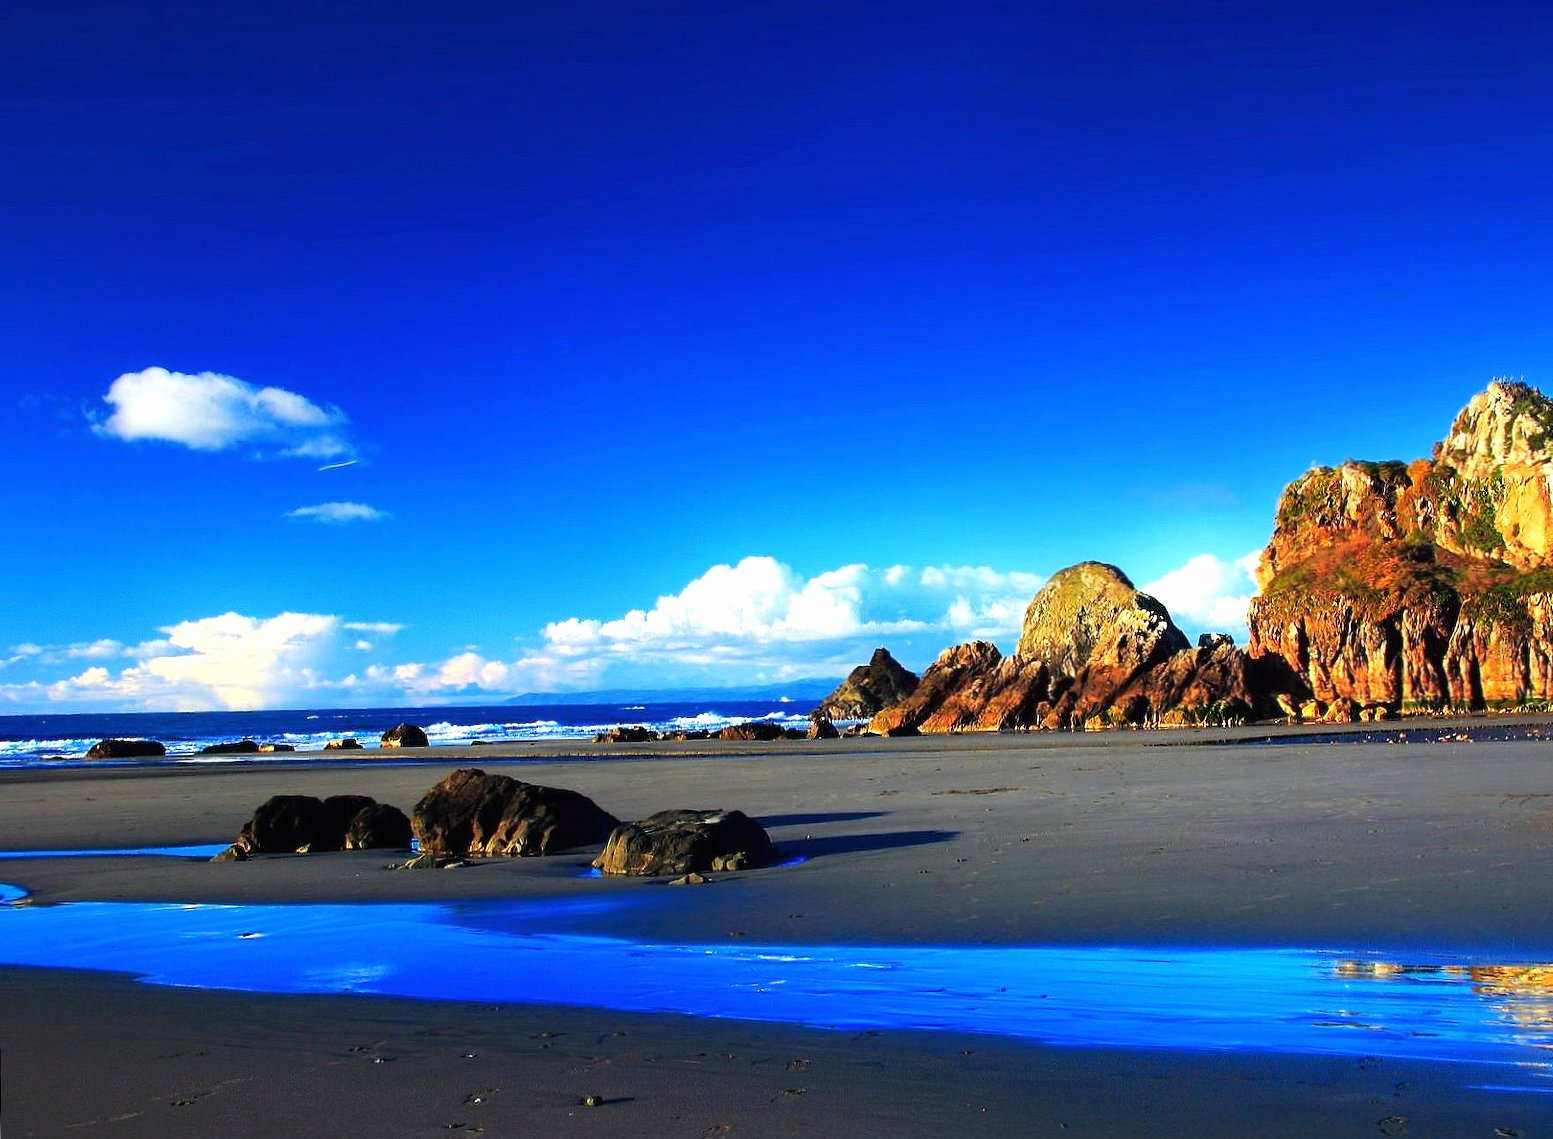 black sand beach and blue sea wallpapers HD quality